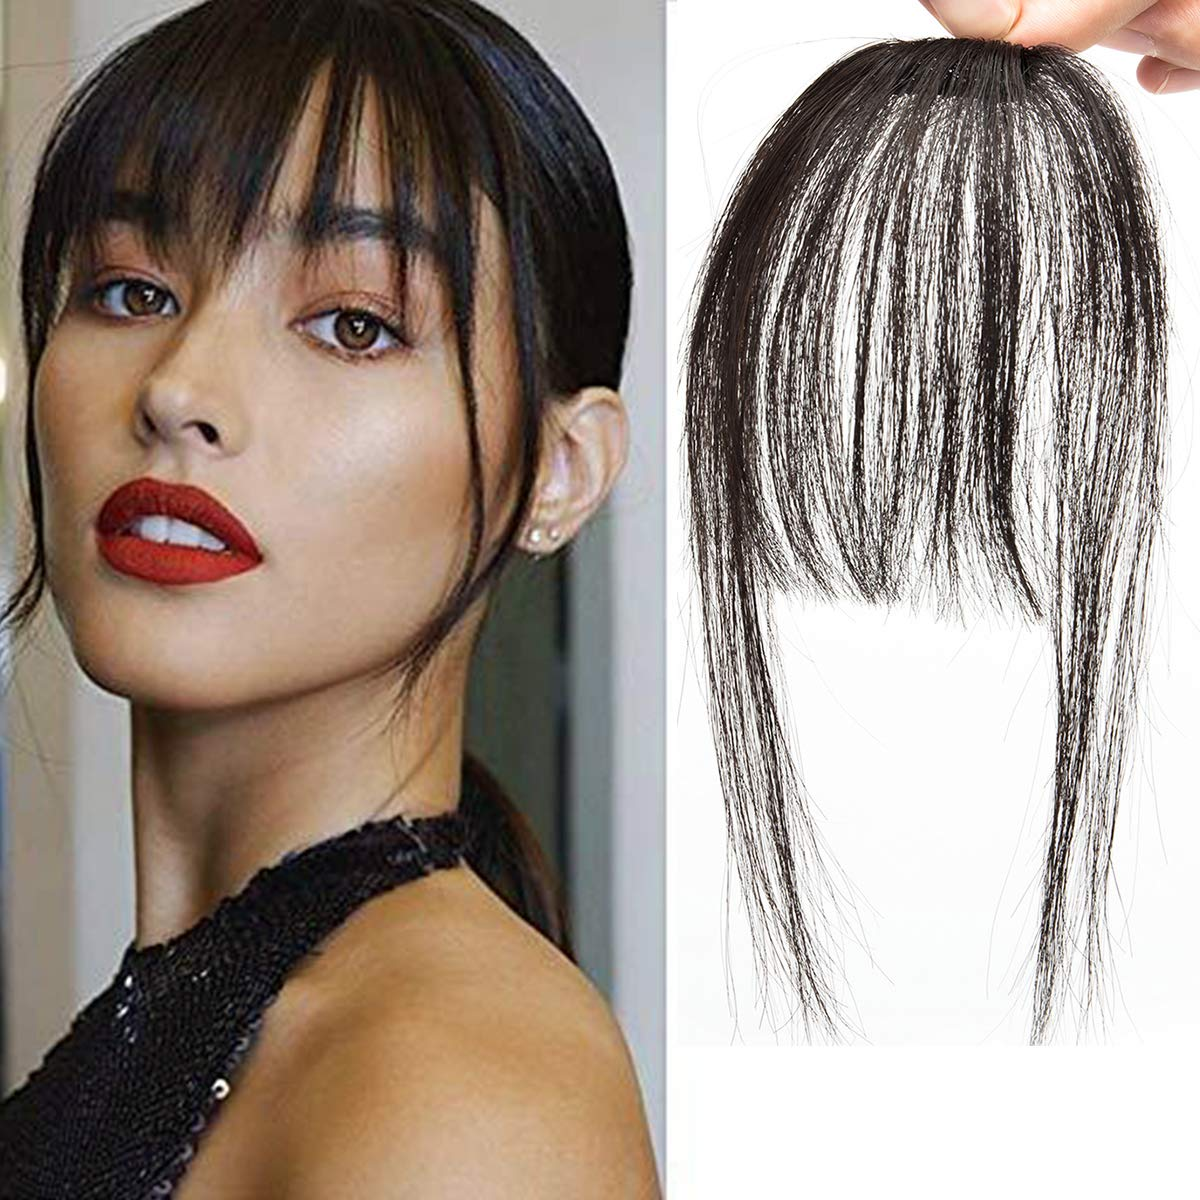 DODOING 12PCS Clip in Bangs Hair Extensions Human Hair Air Bangs with  Temples One Piece Clip on Front Bangs Hairpiece 12% Human Real Hair Fringe